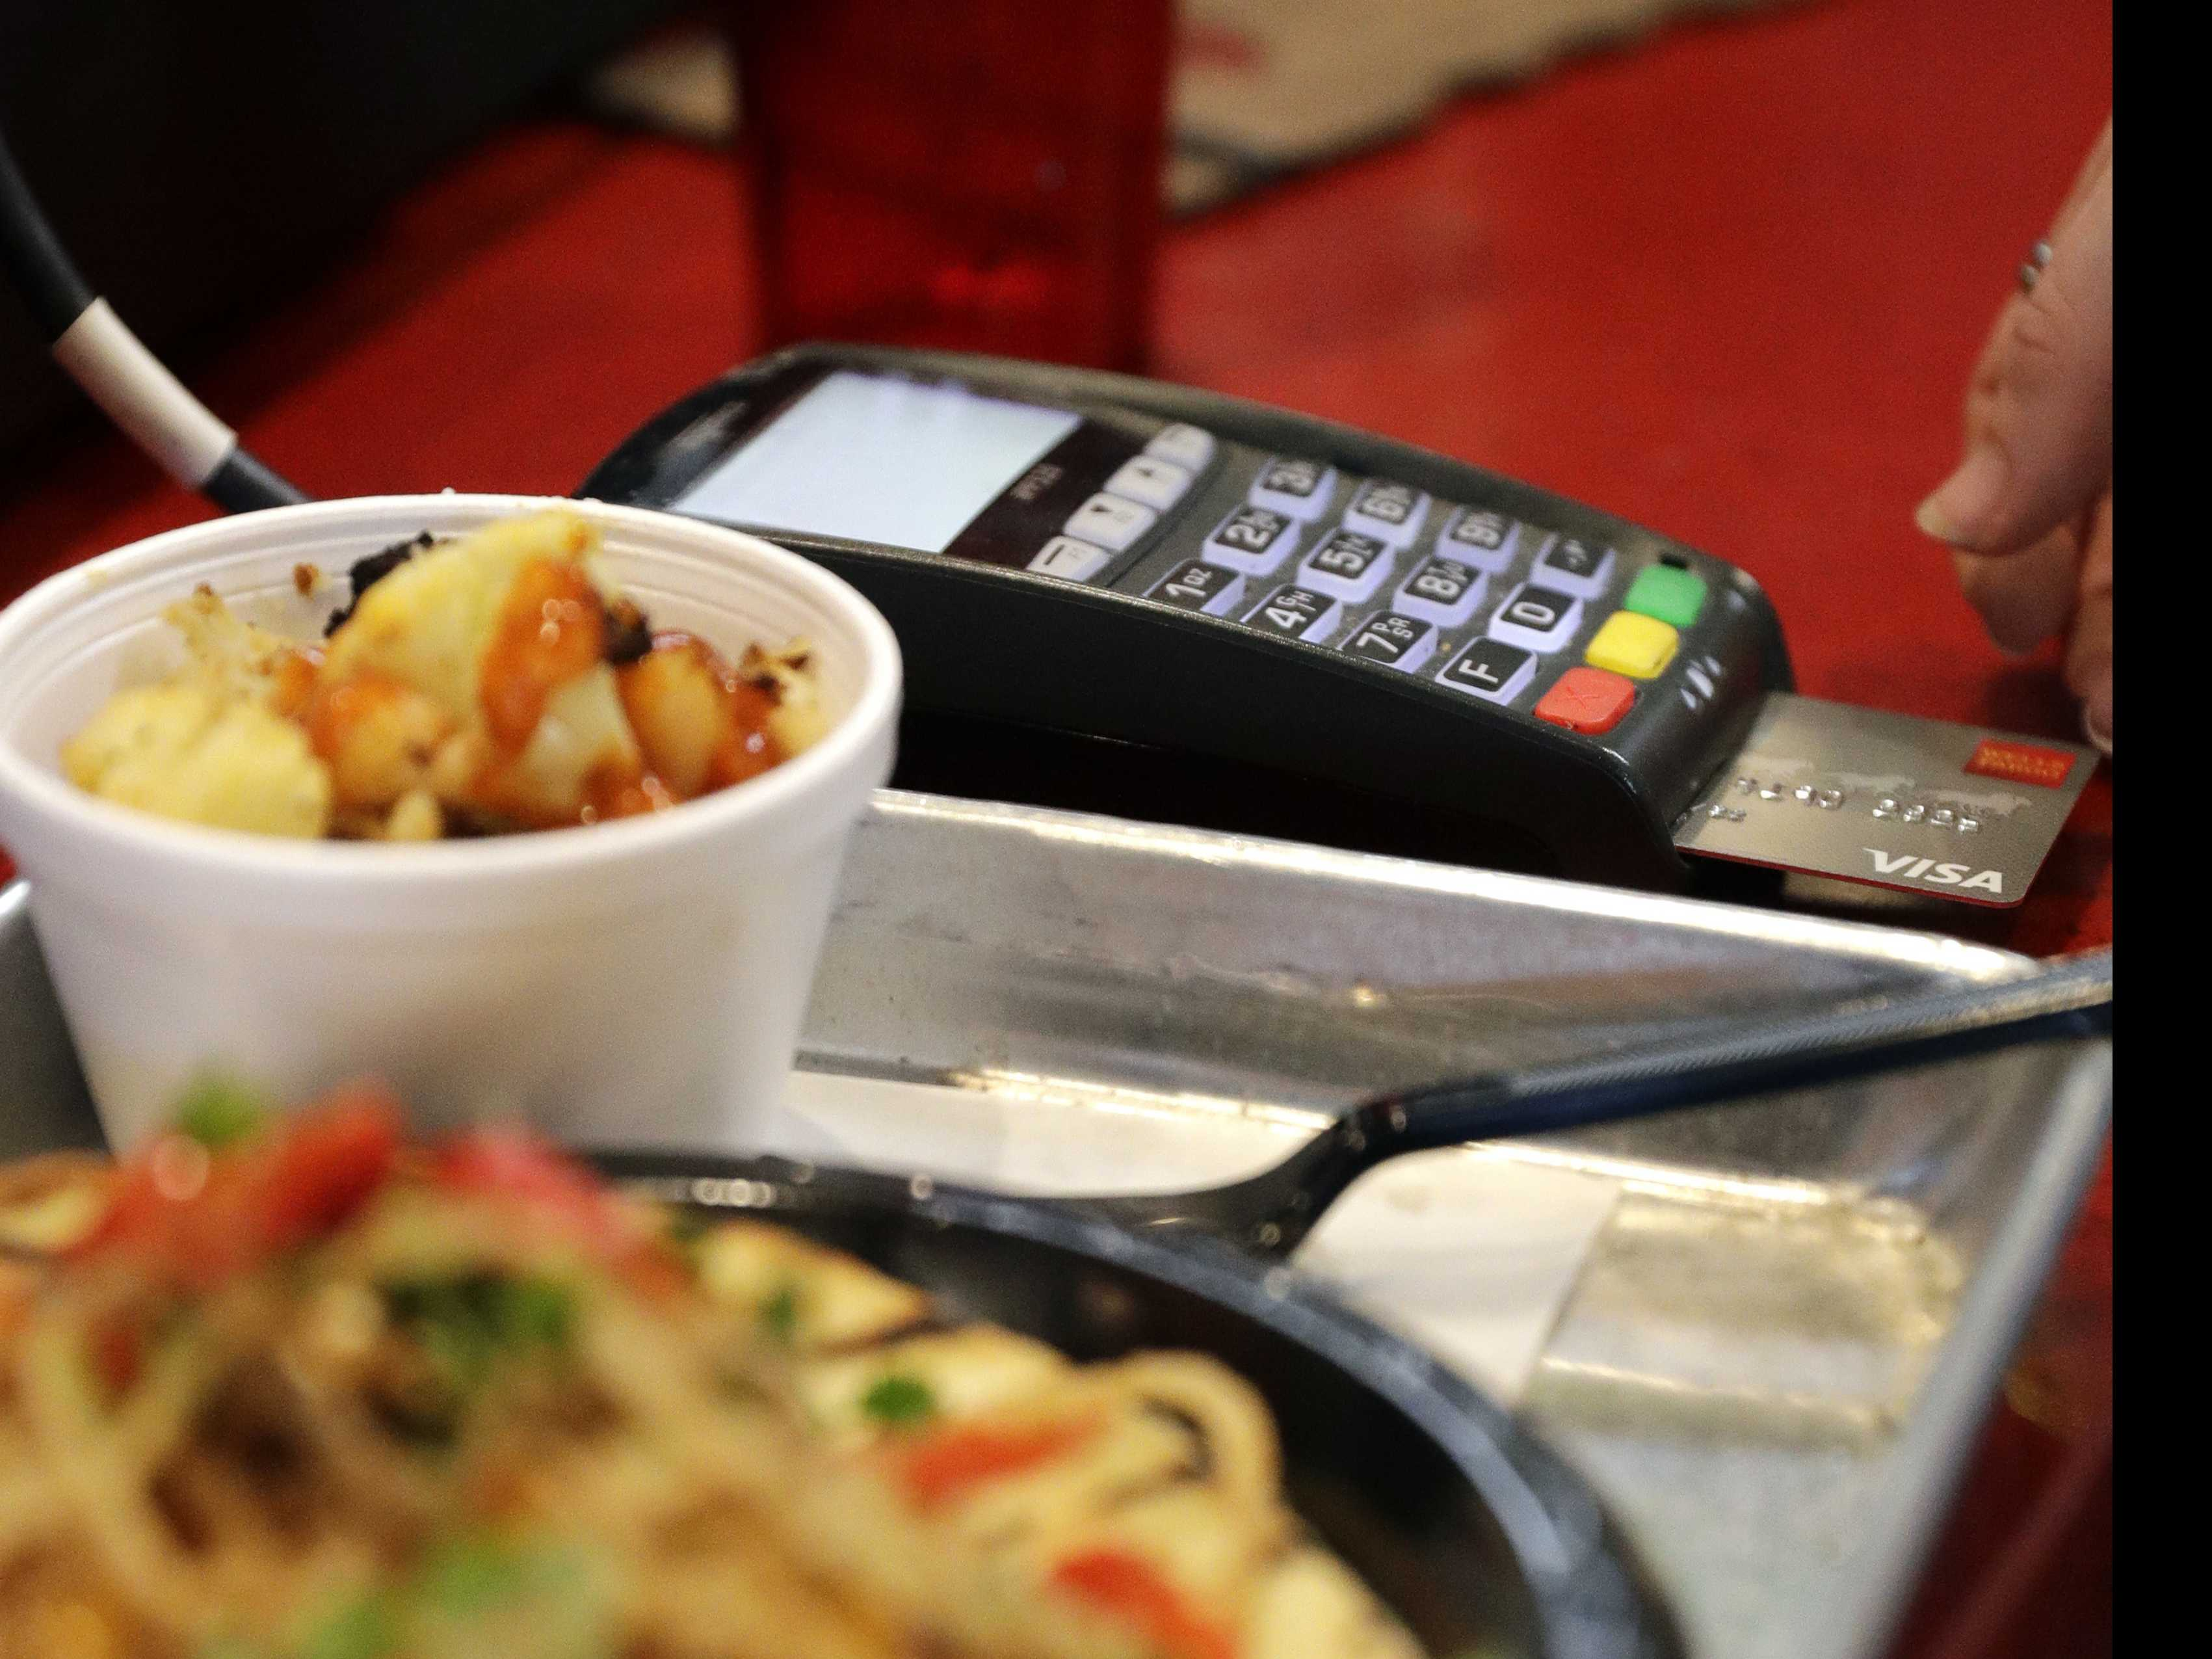 As Cashless Stores Grow, So Does Backlash